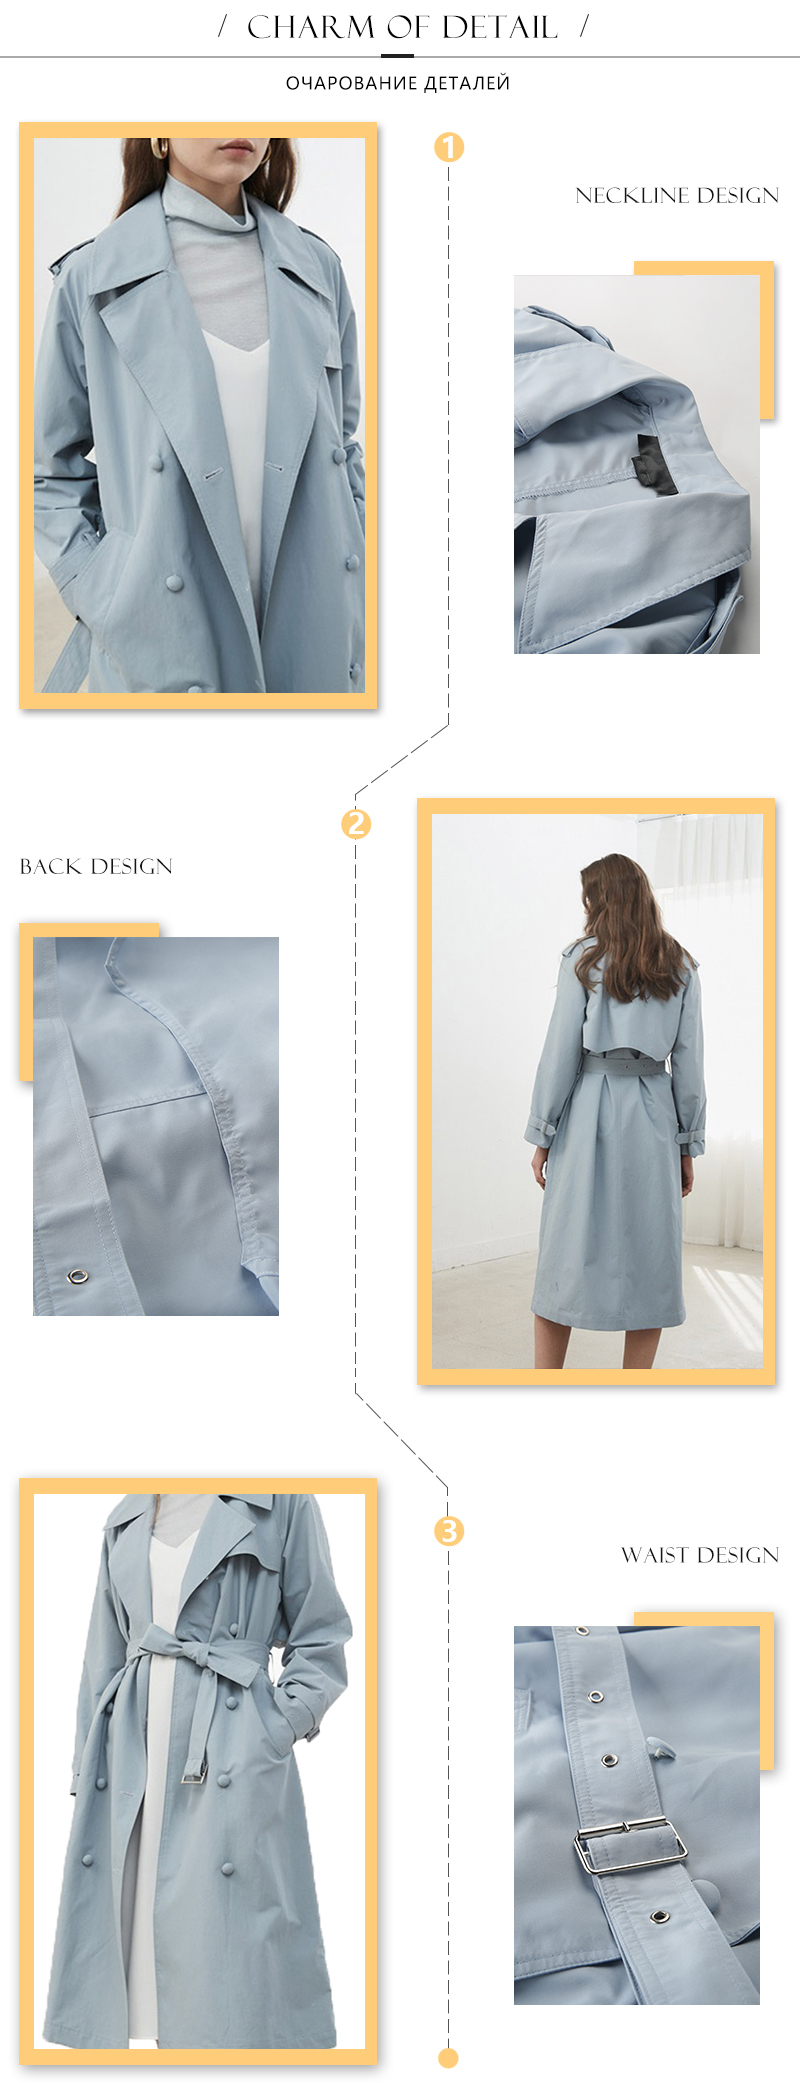 HDY Haoduoyi Women Casual Solid Color Double Breasted Outwear Sashes Office Coat Chic Epaulet Design Long Trench Coat Autumn 7